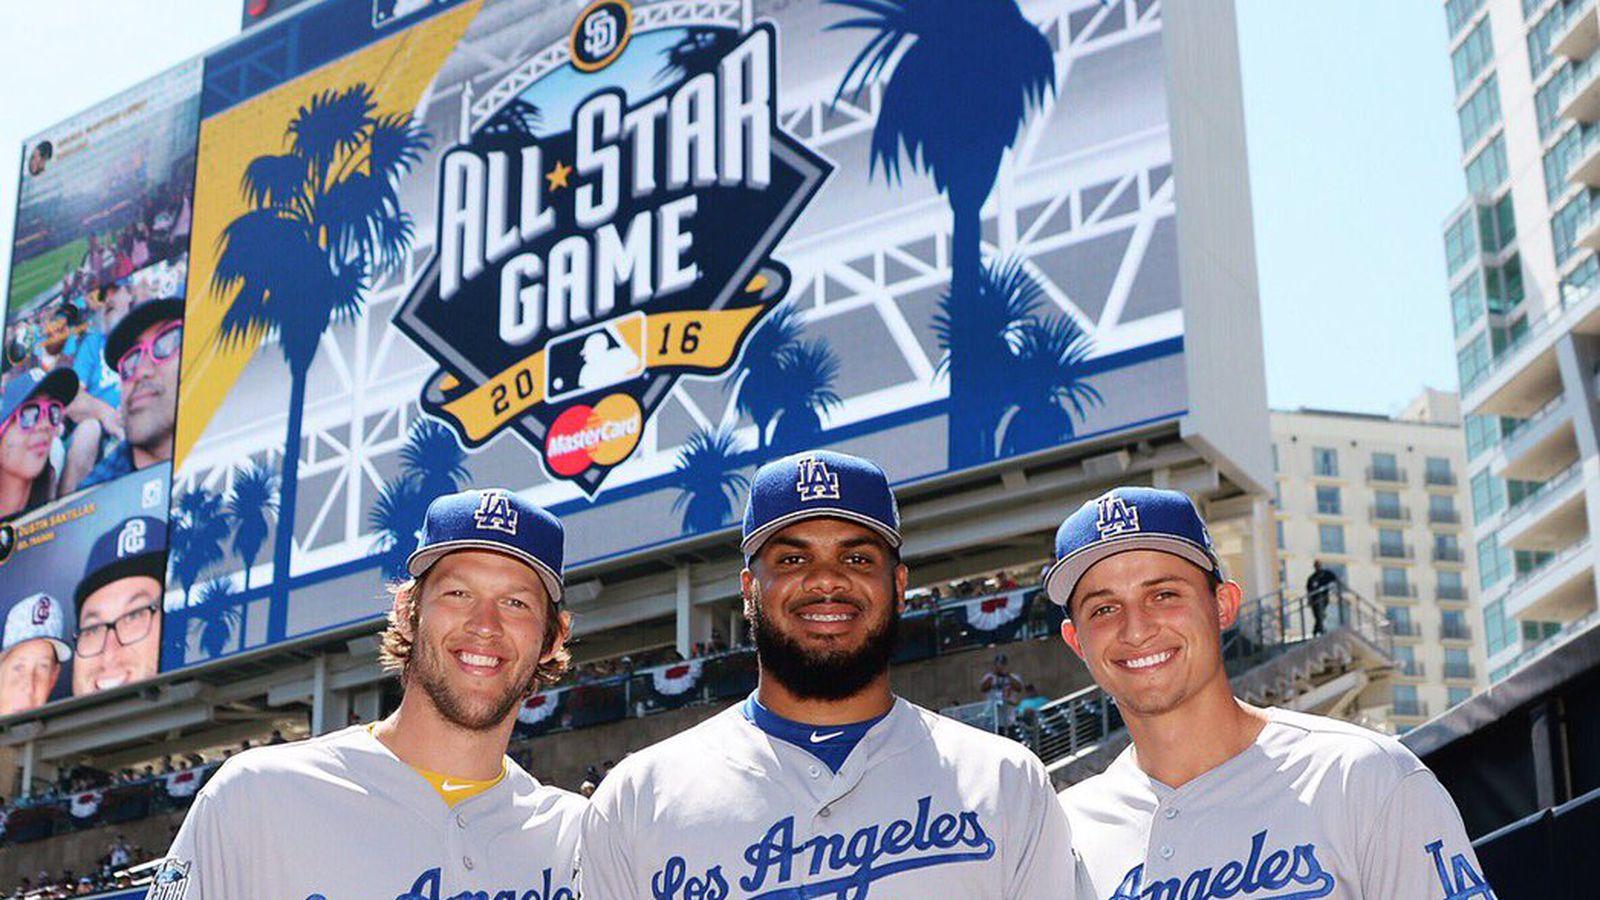 Clayton-kershaw-kenley-jansen-corey-seager-all-star-game-2016-dodgers-soohoo.0.0